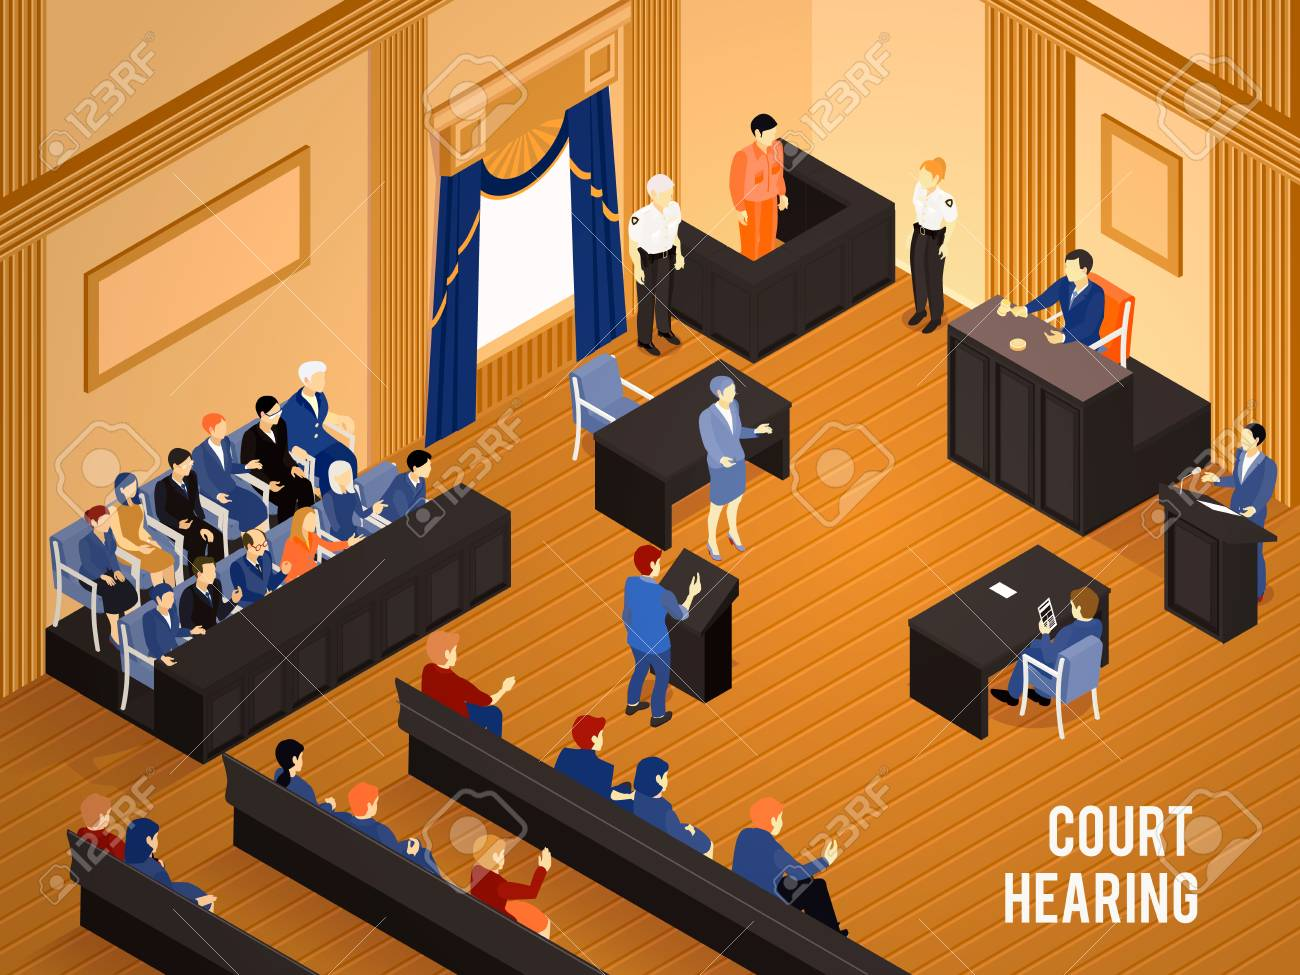 Court hearing with judge jury and witnesses 3d isometric vector illustration - 96956886